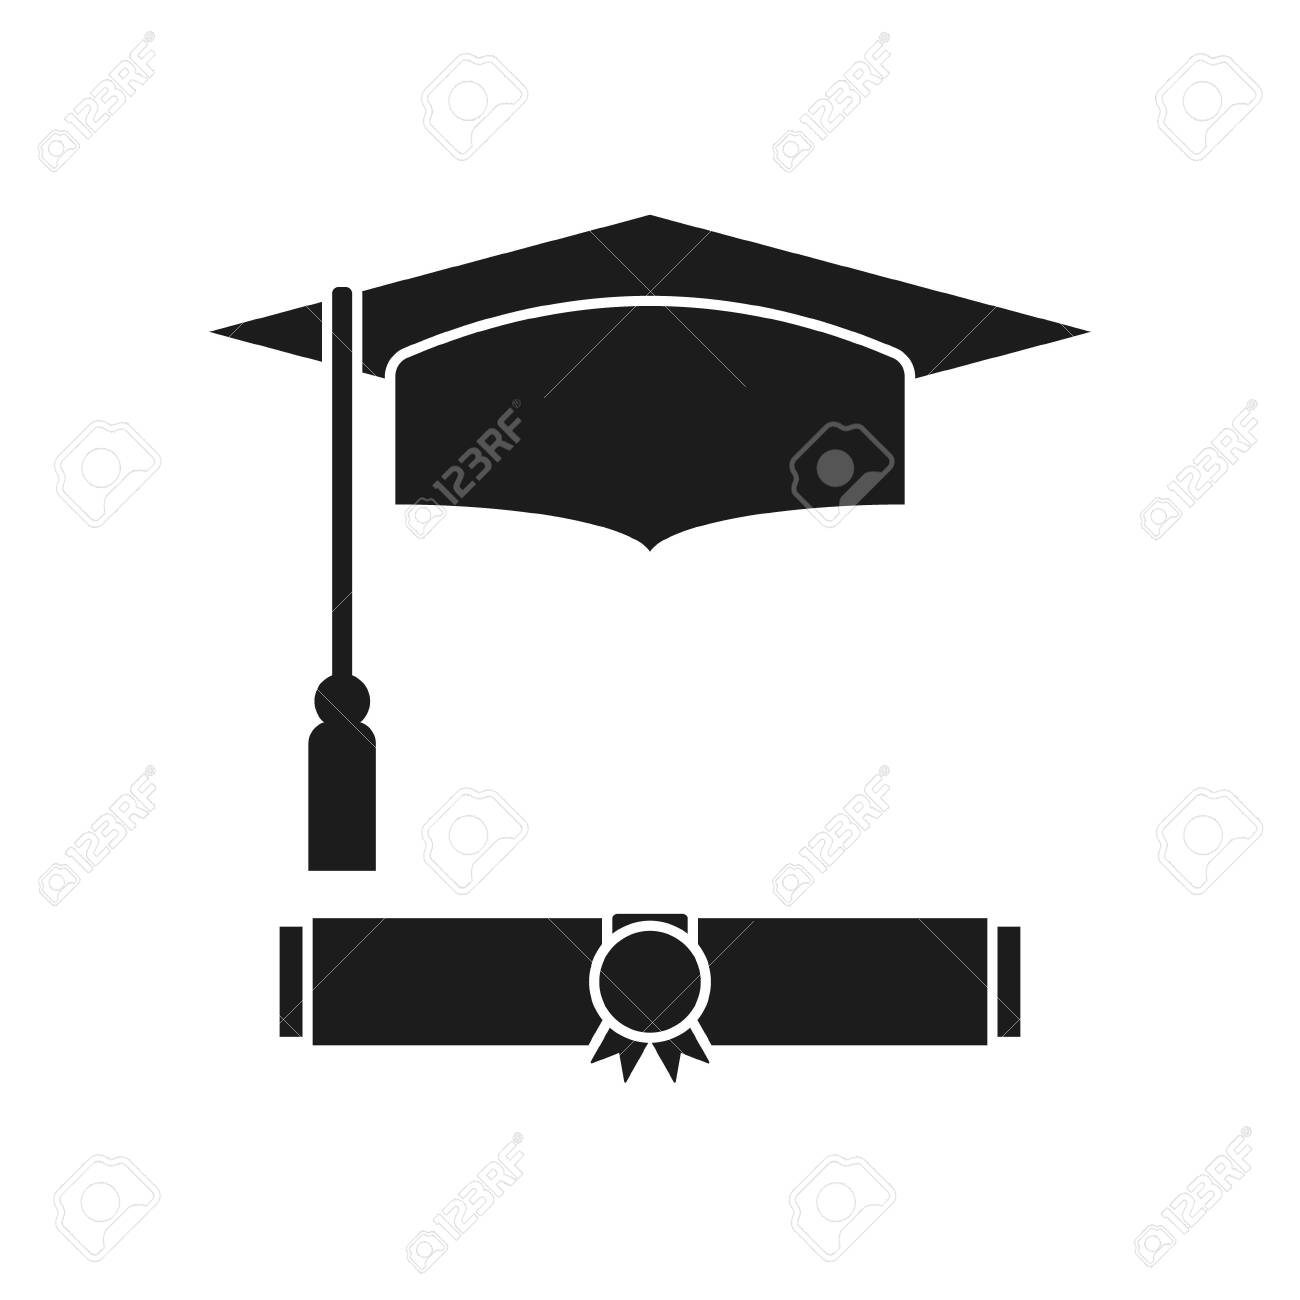 Vector illstration diploma icon. Flat design. Isolated. - 139758281